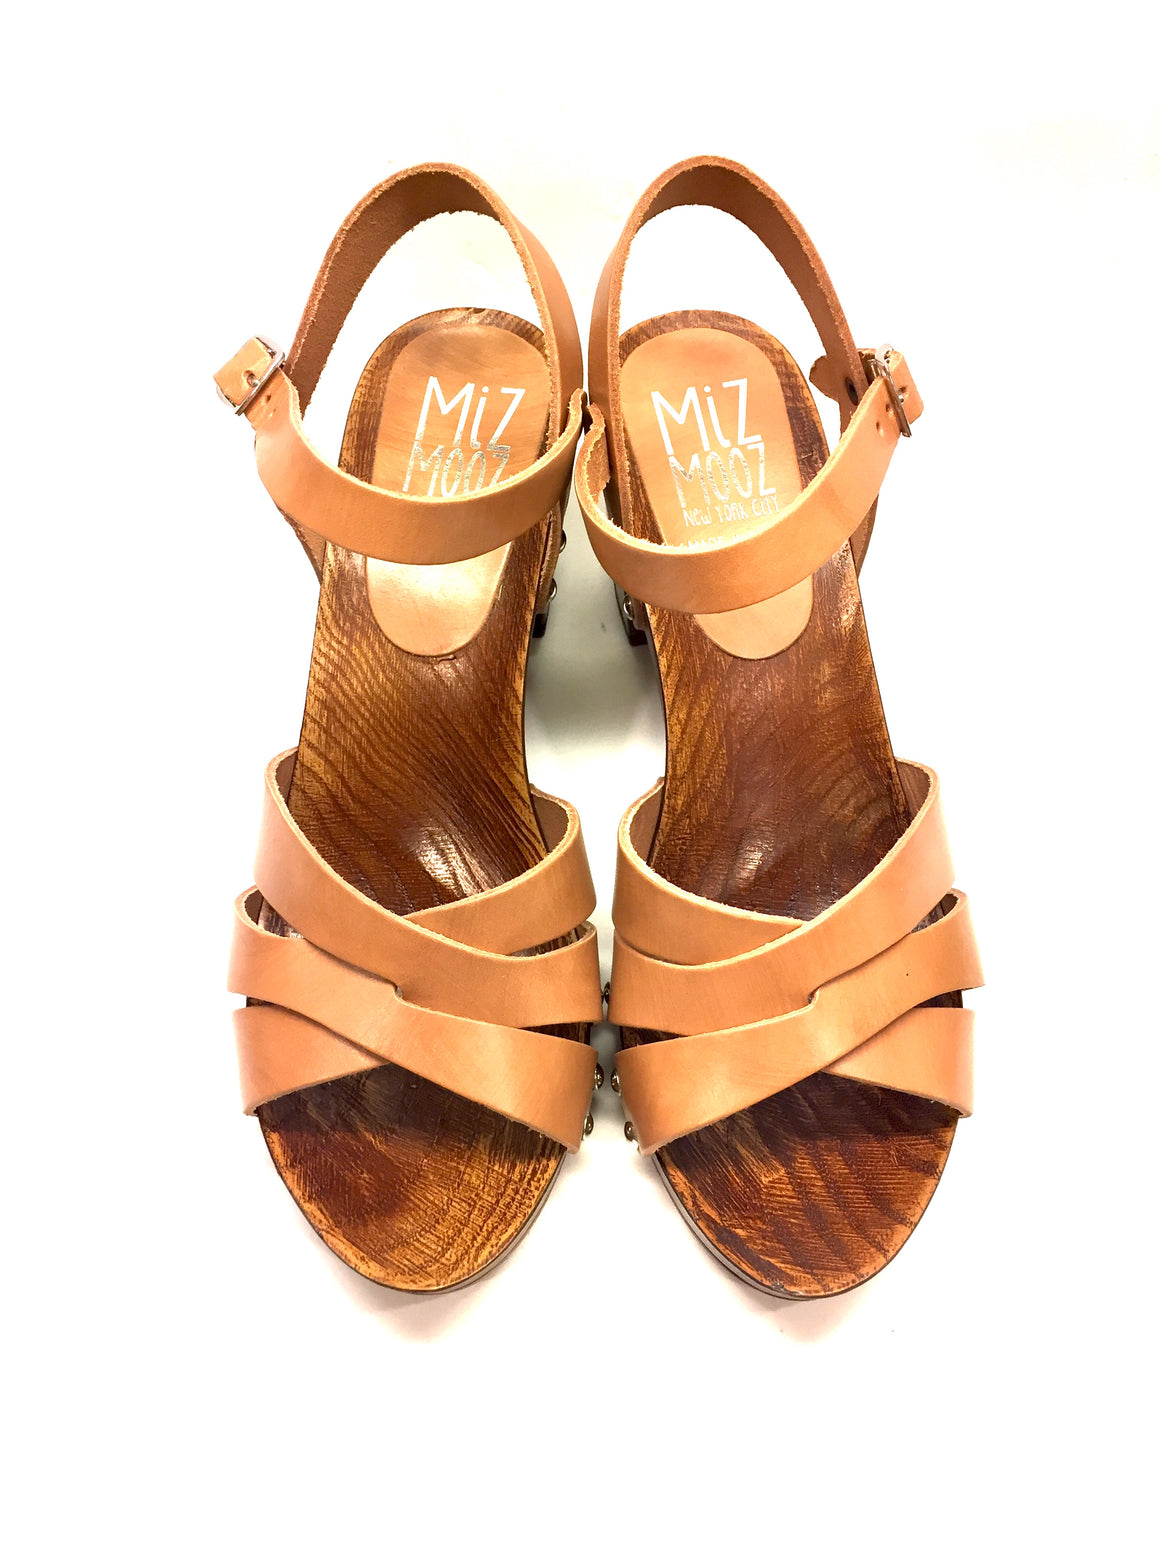 New MIZ MOOZ Tan Leather Wooden Platform & Heels Open-Toe Slingback Sandals Sz38